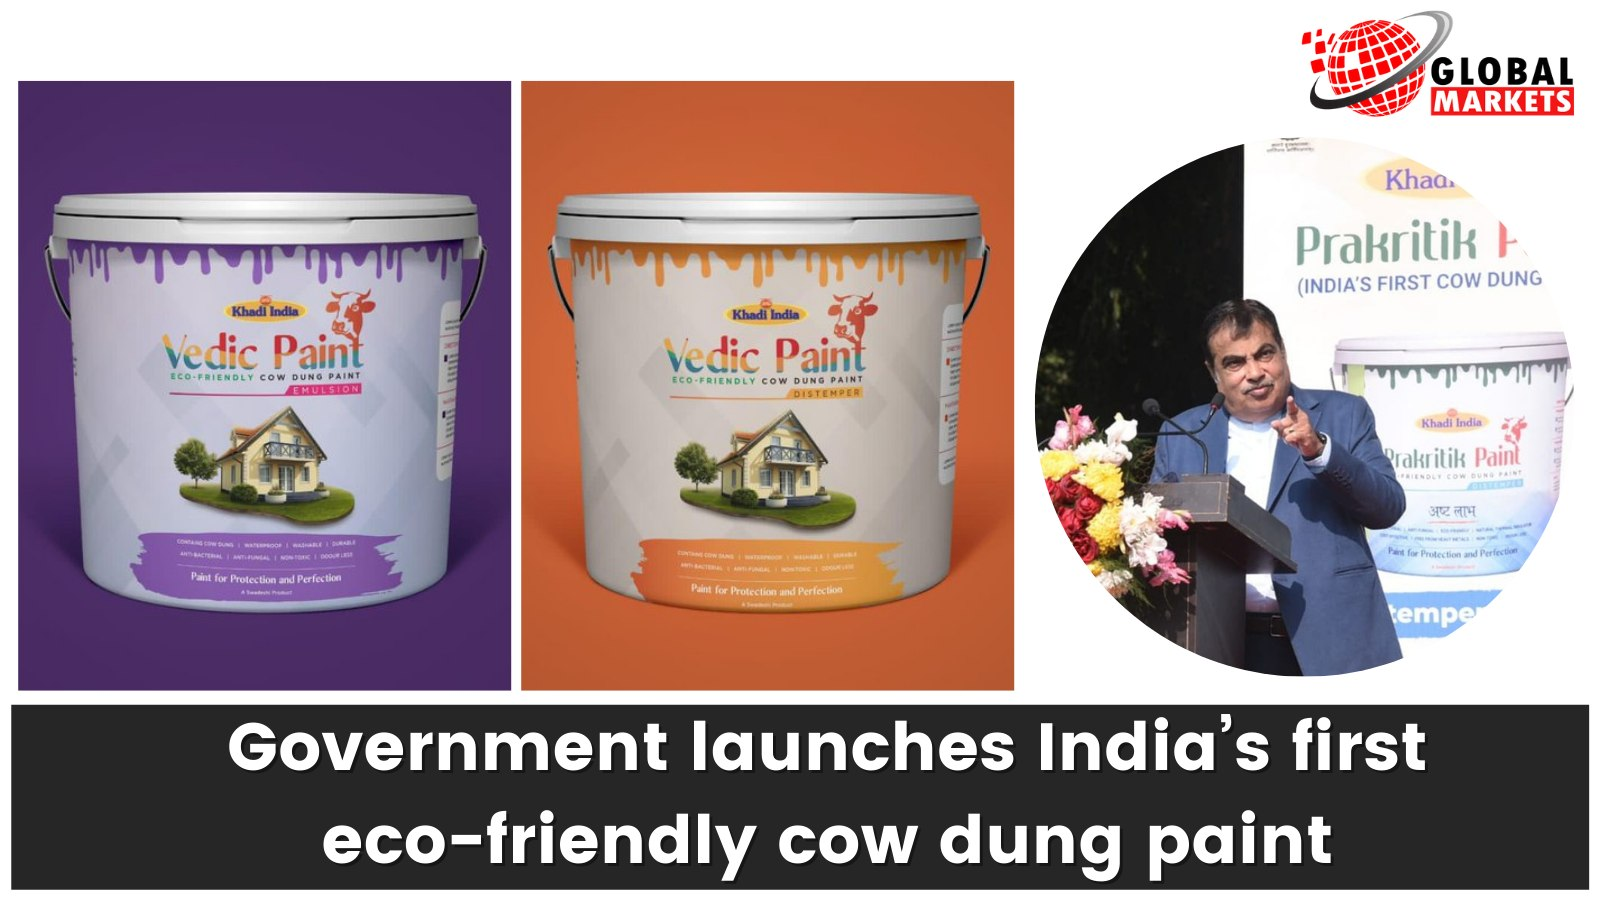 Government launches India's first eco-friendly cow dung paint